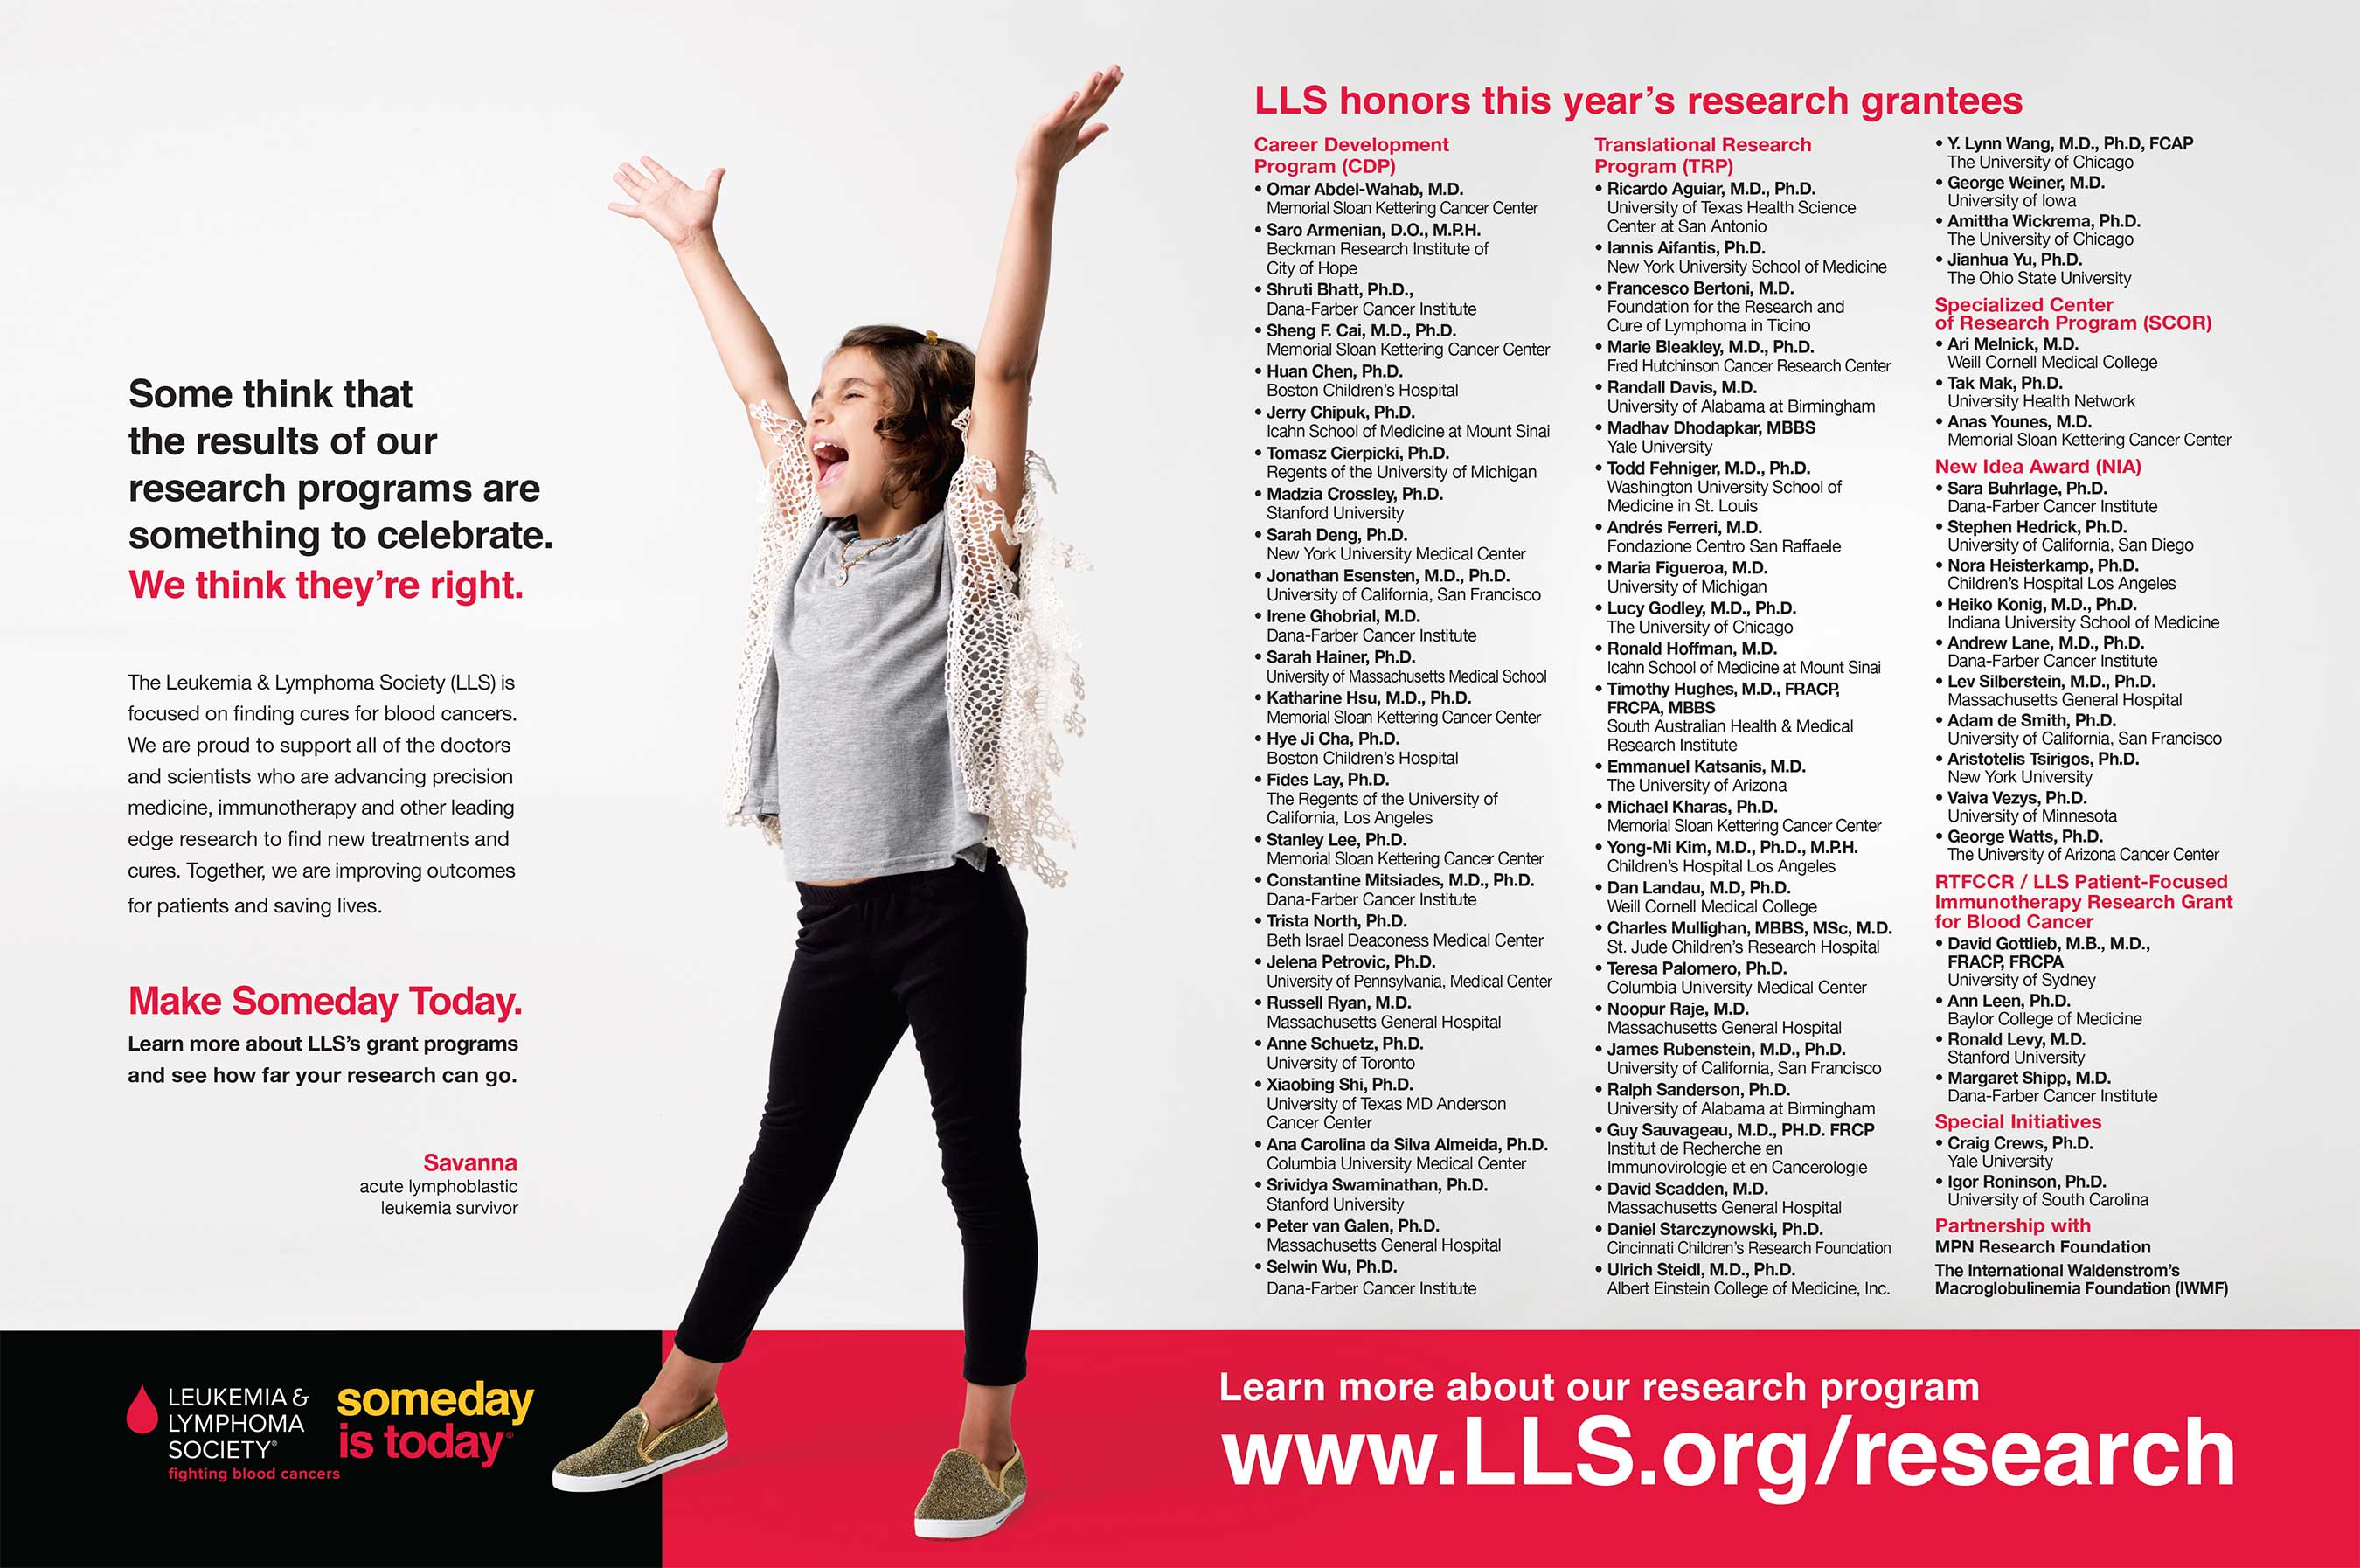 The Leukemia & Lymphoma Society's 2017 research grant recipients.